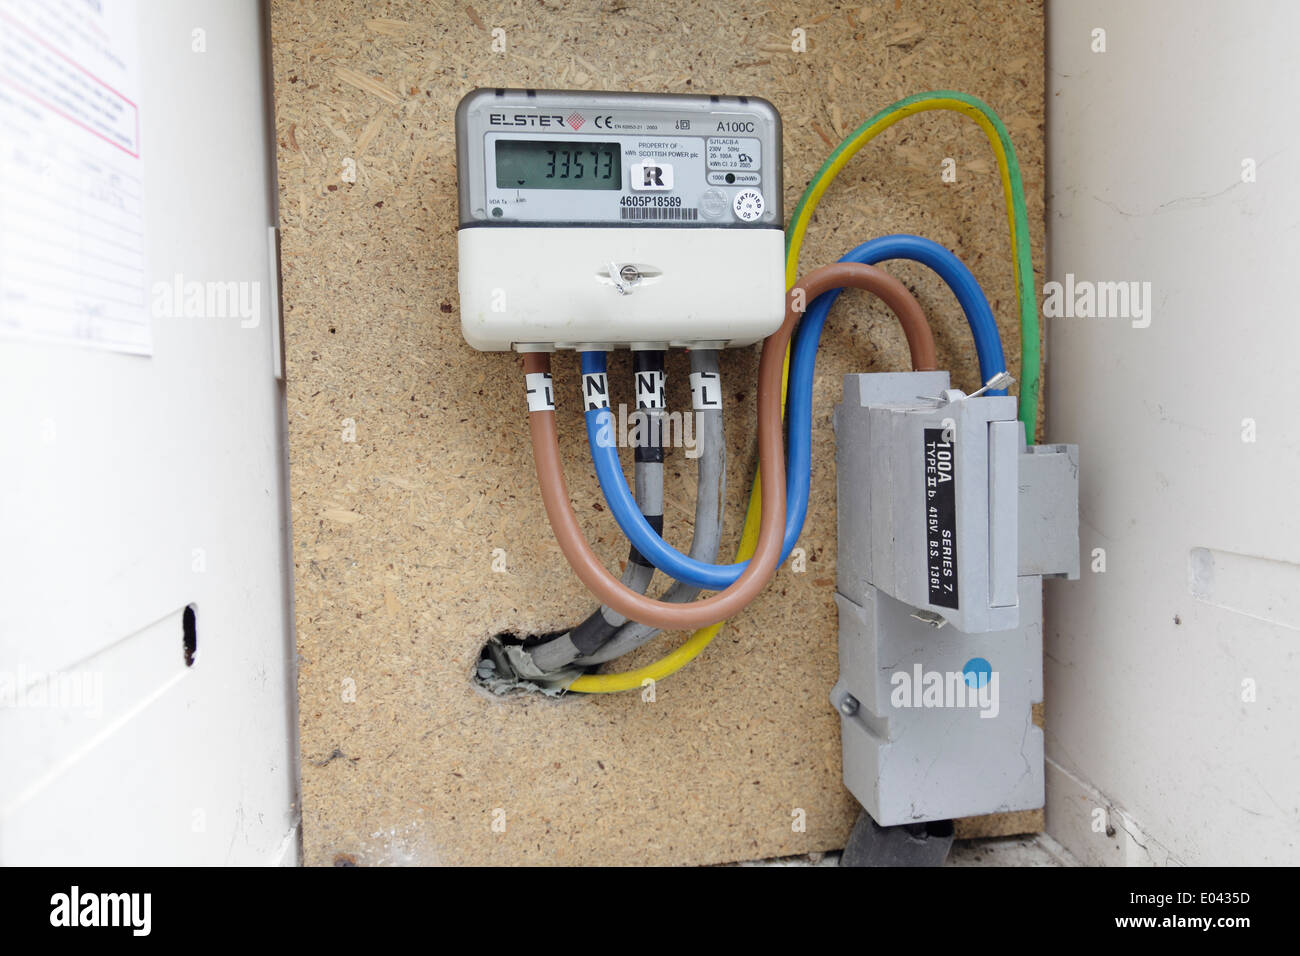 hight resolution of house power meter box wiring wiring diagram paper wiring electric meter for 115v wiring electricity meter